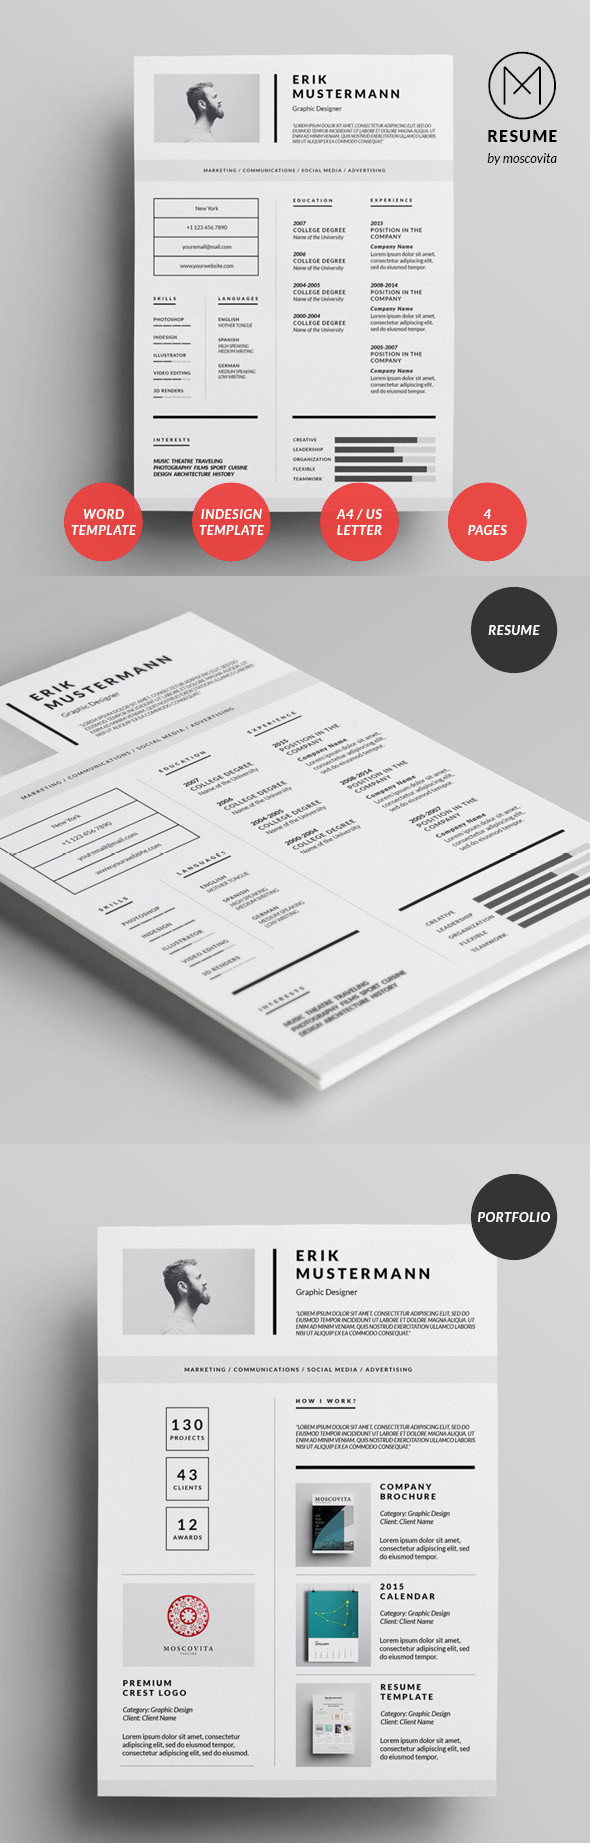 50 Best Resume Templates For 2018 - 32